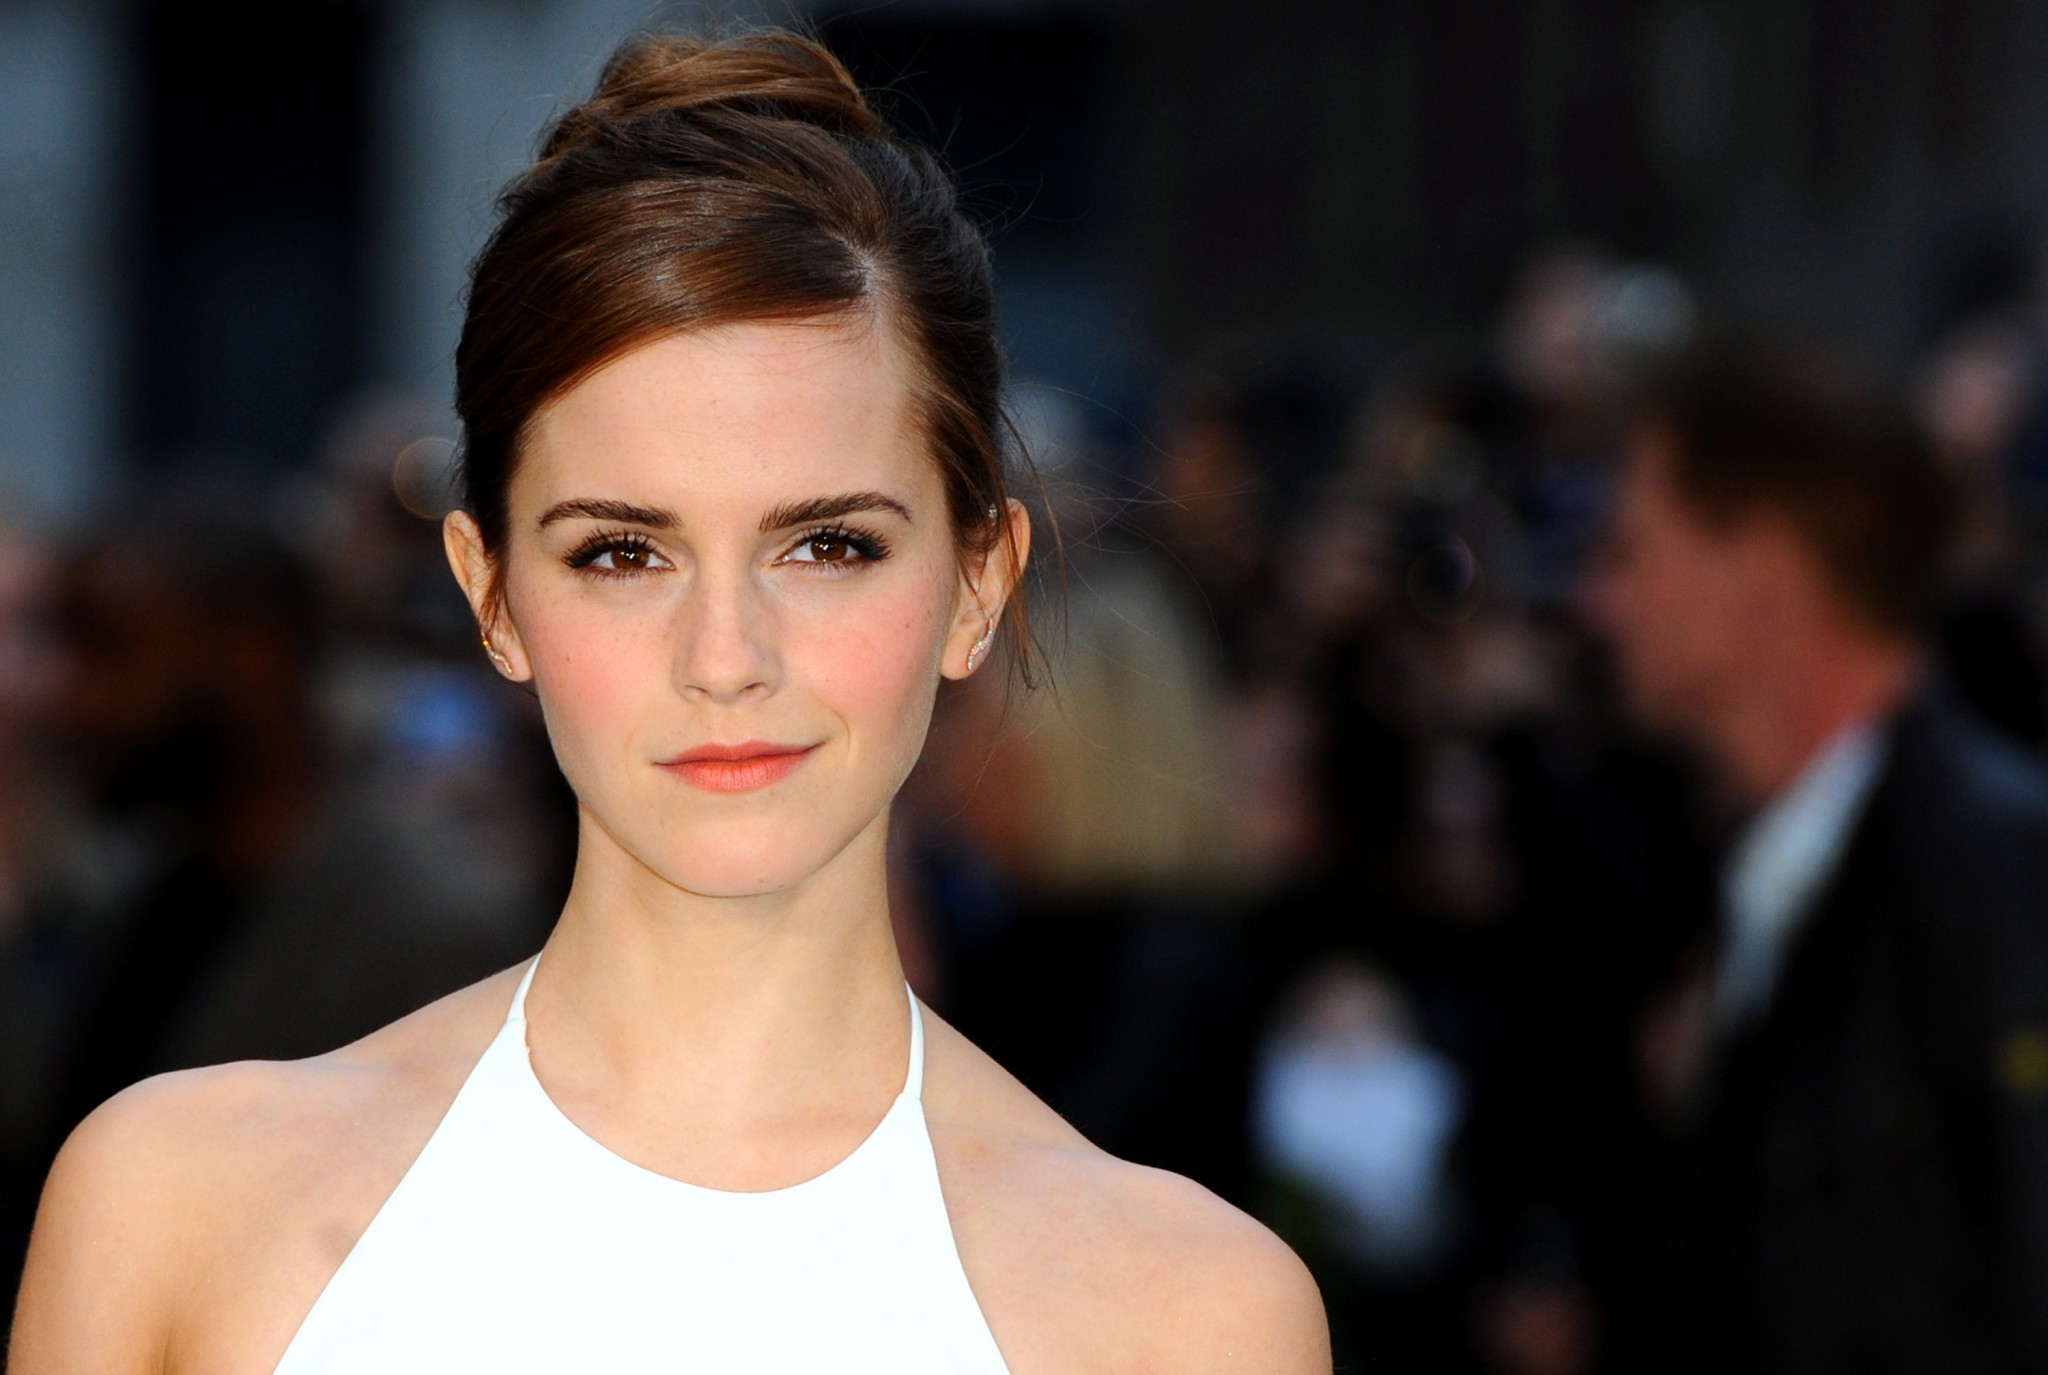 Former Harry Potter actress Emma Watson is all grown up